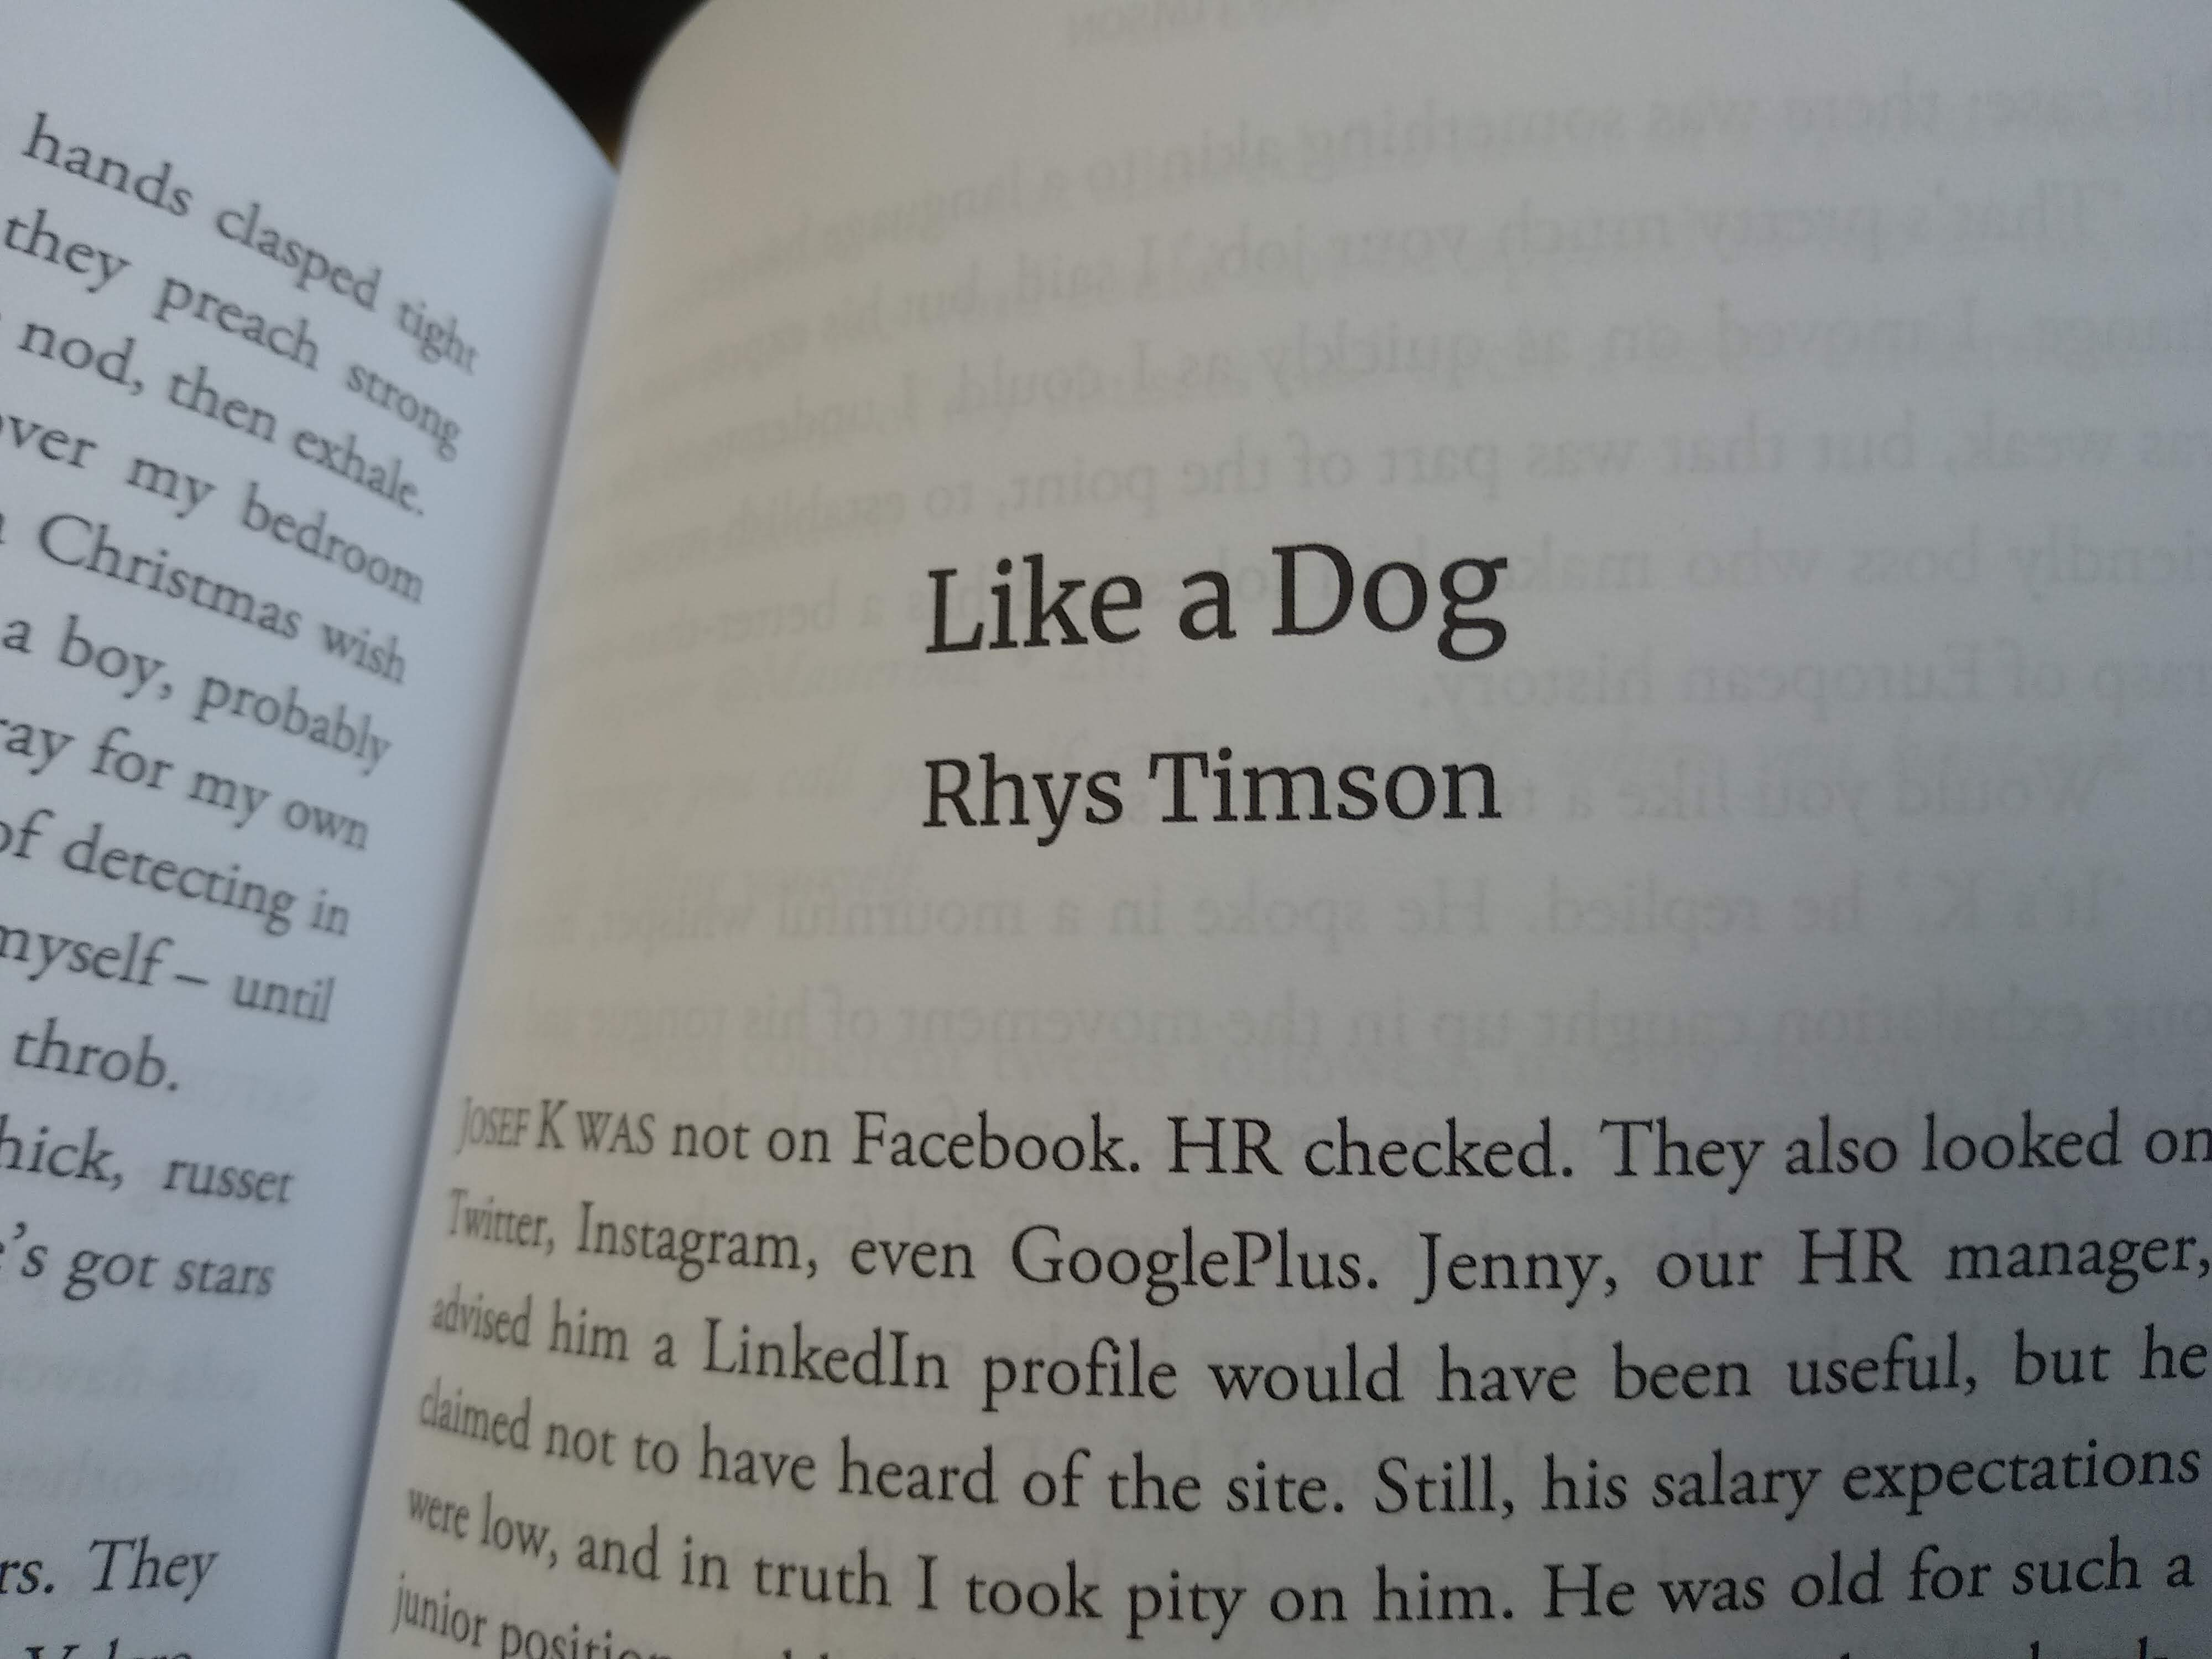 The first page of 'Like a Dog' in the Future Shock anthology